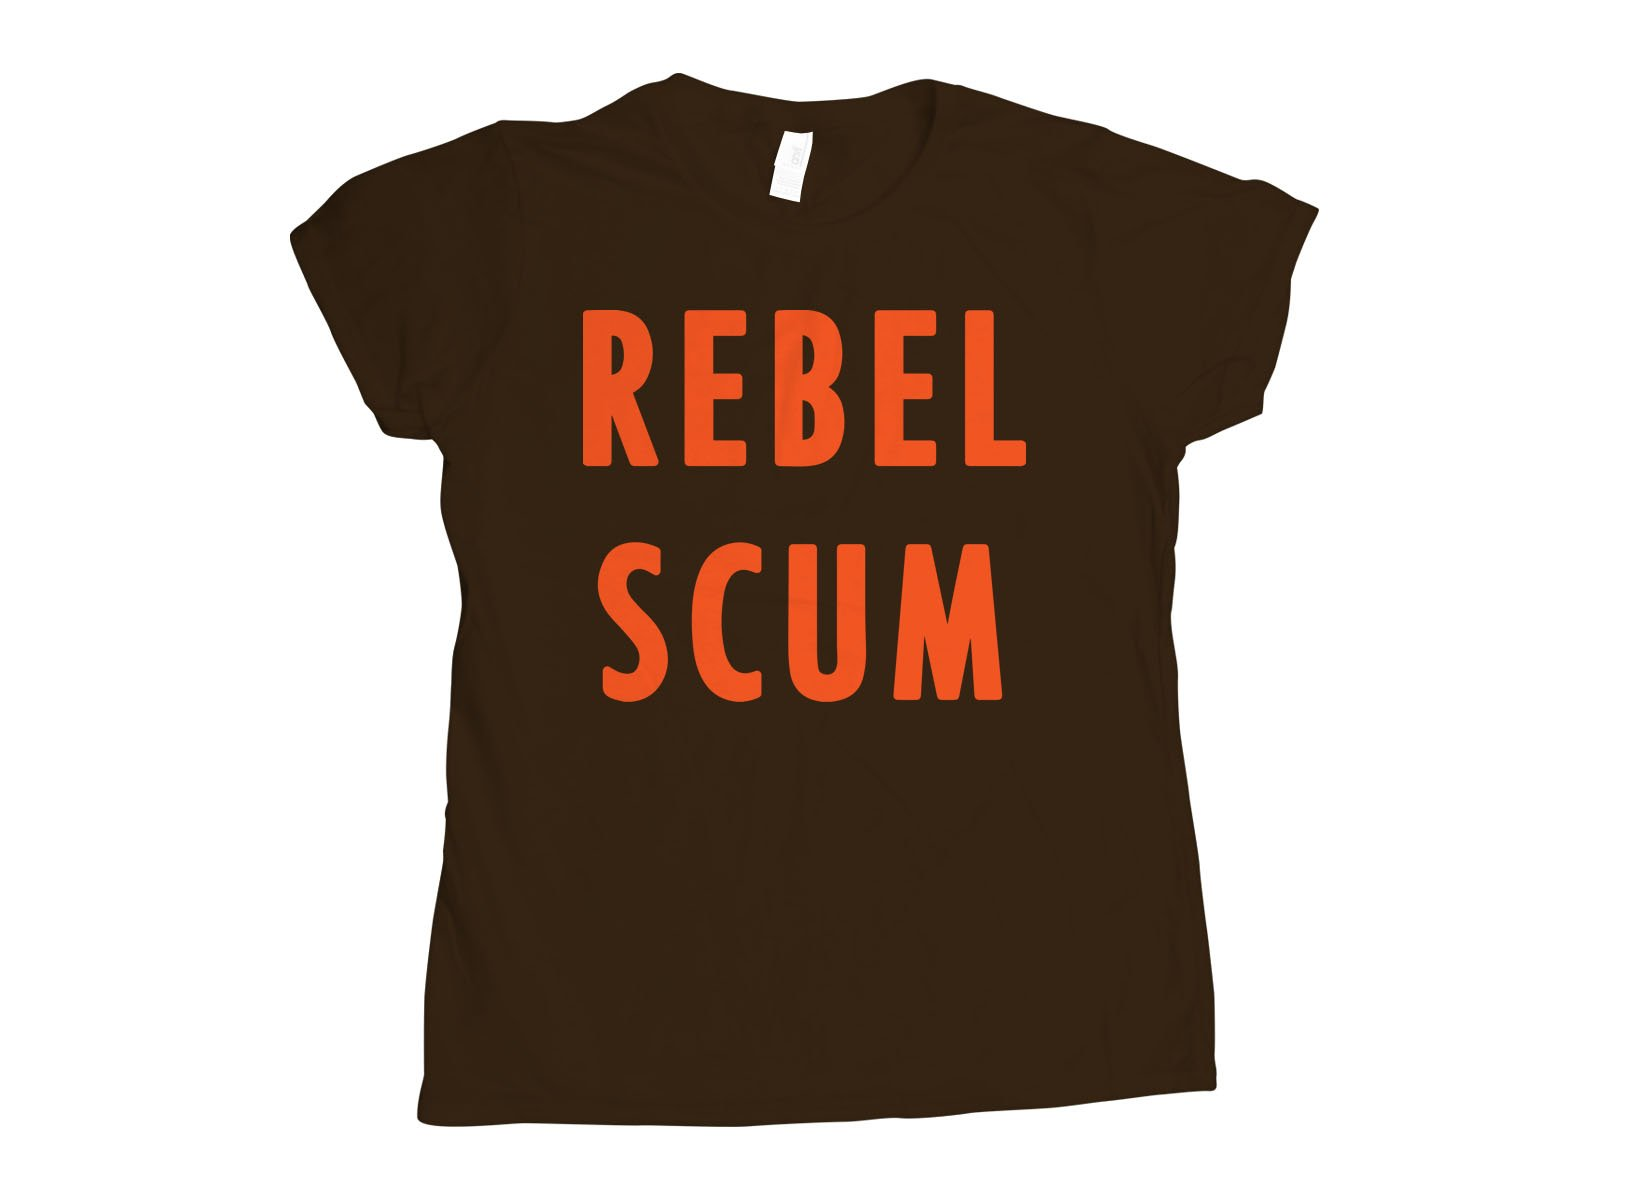 Rebel Scum on Womens T-Shirt